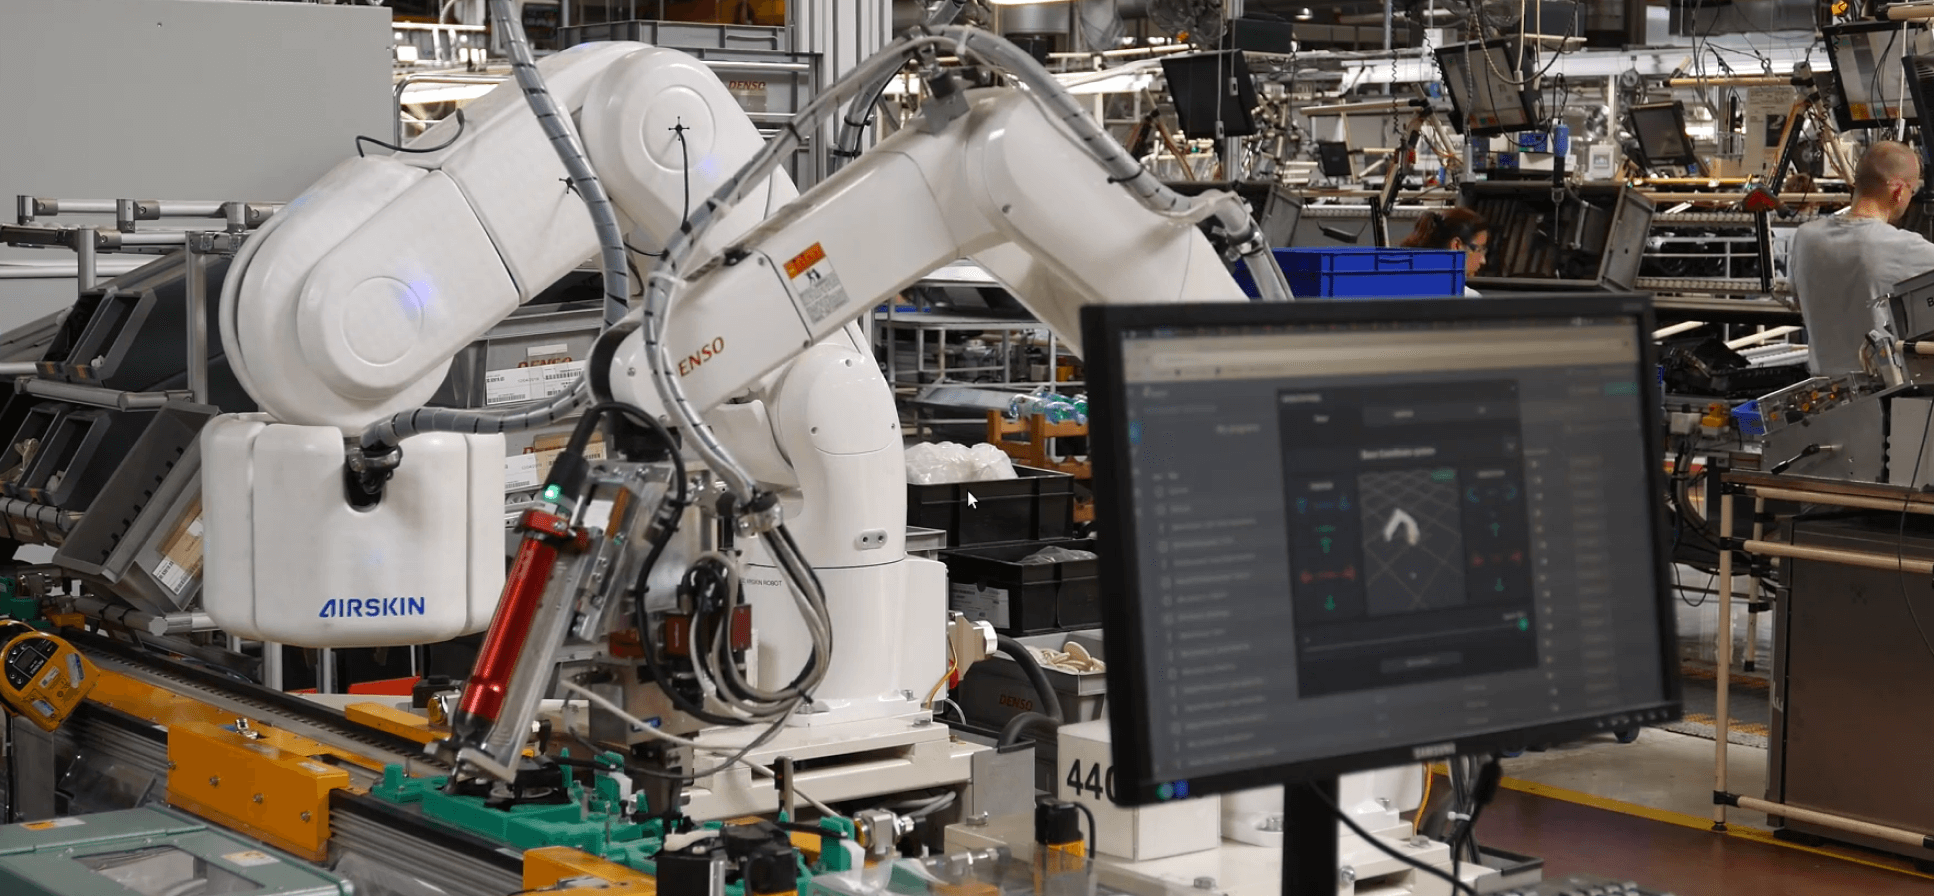 fenceless robotic assembly application with a robot that is equipped with AIRSKIN